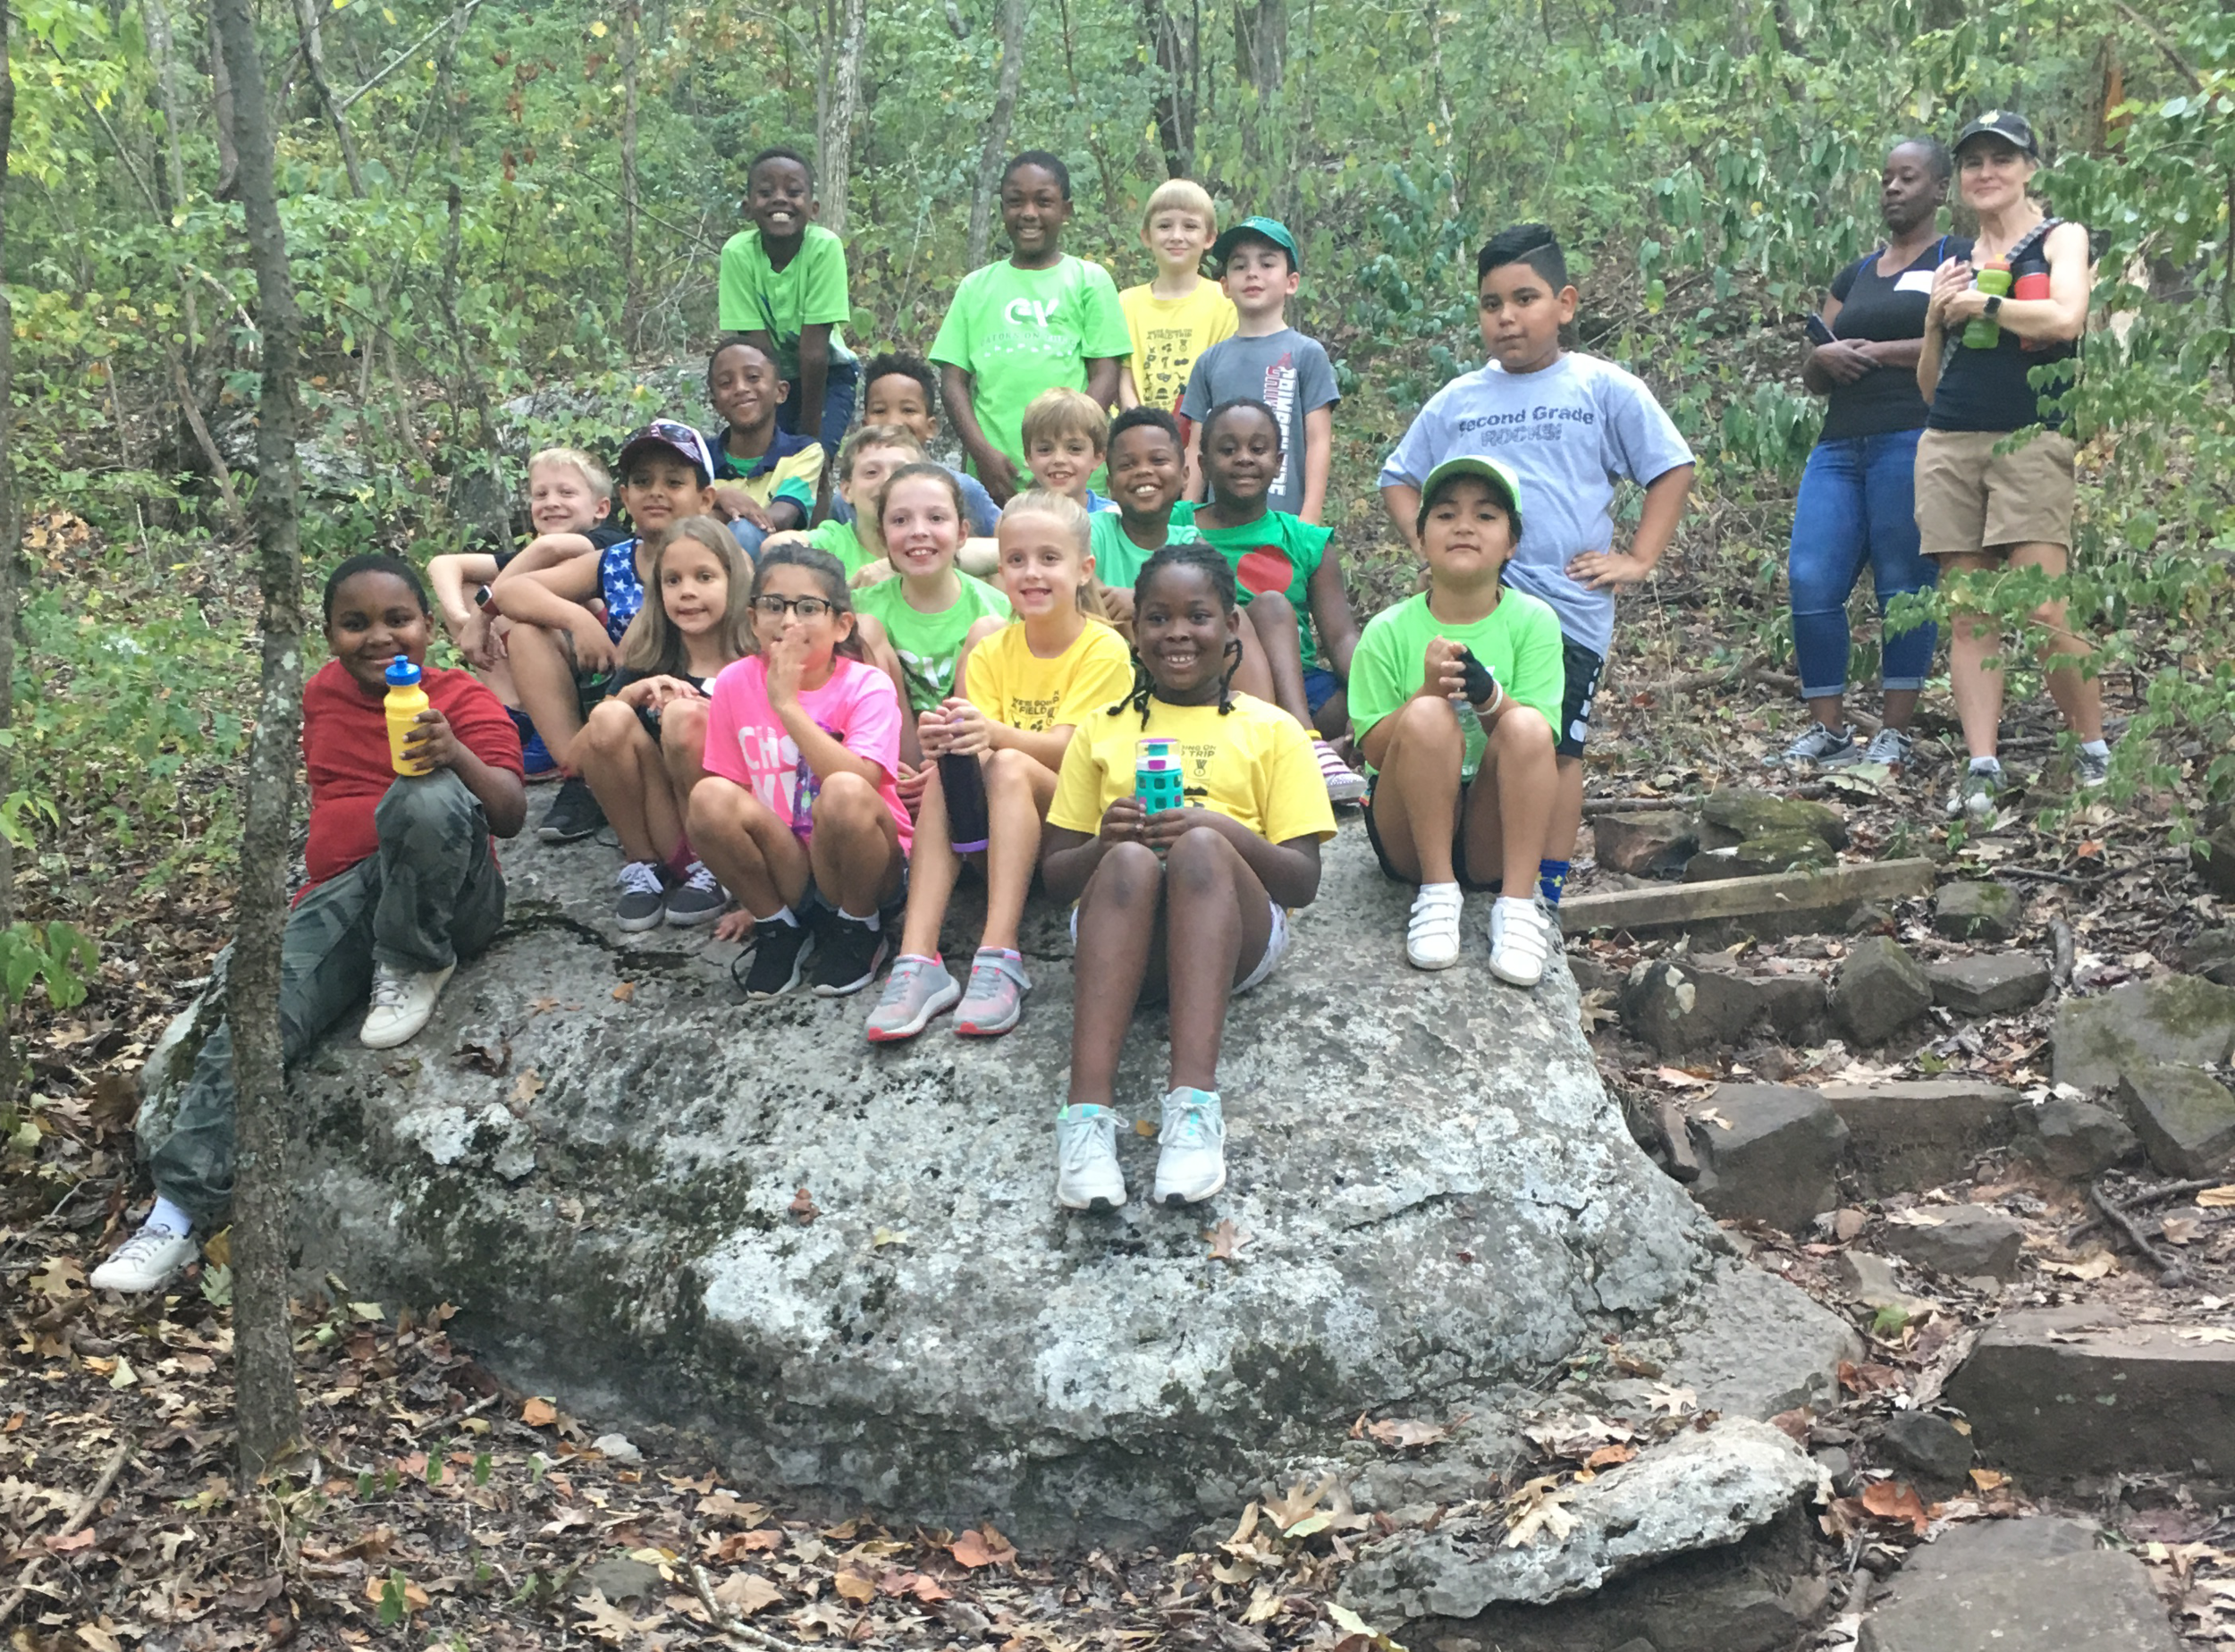 On September 26th and 27th, third graders visited Trillium Trail on a fall field trip. If you are interested in booking a field trip, please complete our form  here  to start the scheduling process. Those schools that qualify can also request an application for a field trip scholarship for funding assistance.